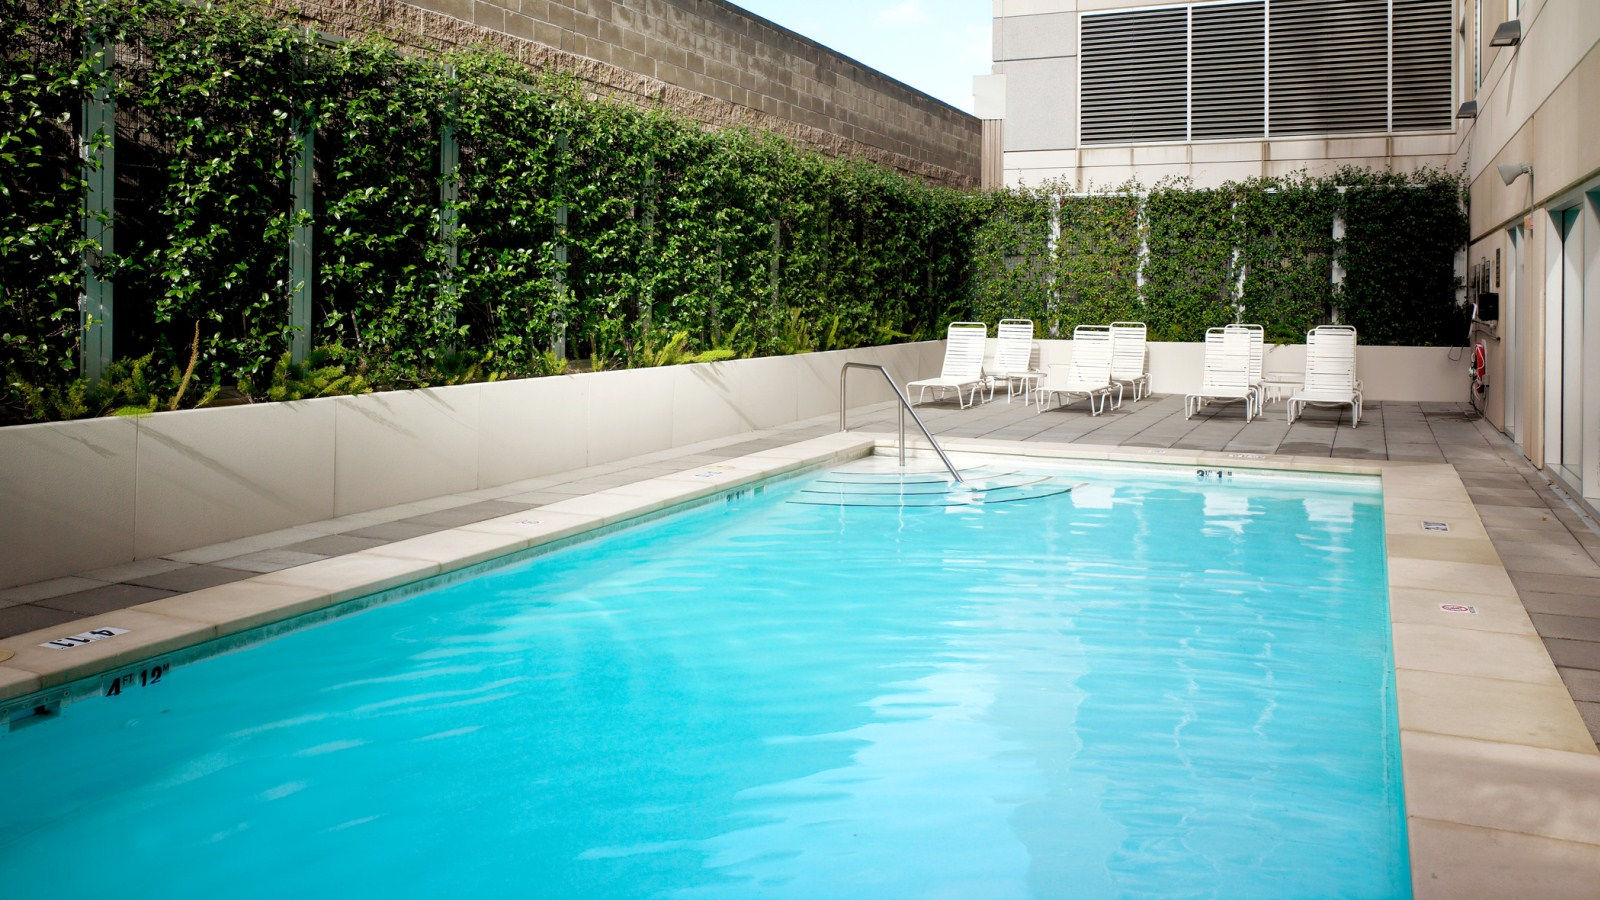 Sacramento Hotel Features - Outdoor Pool